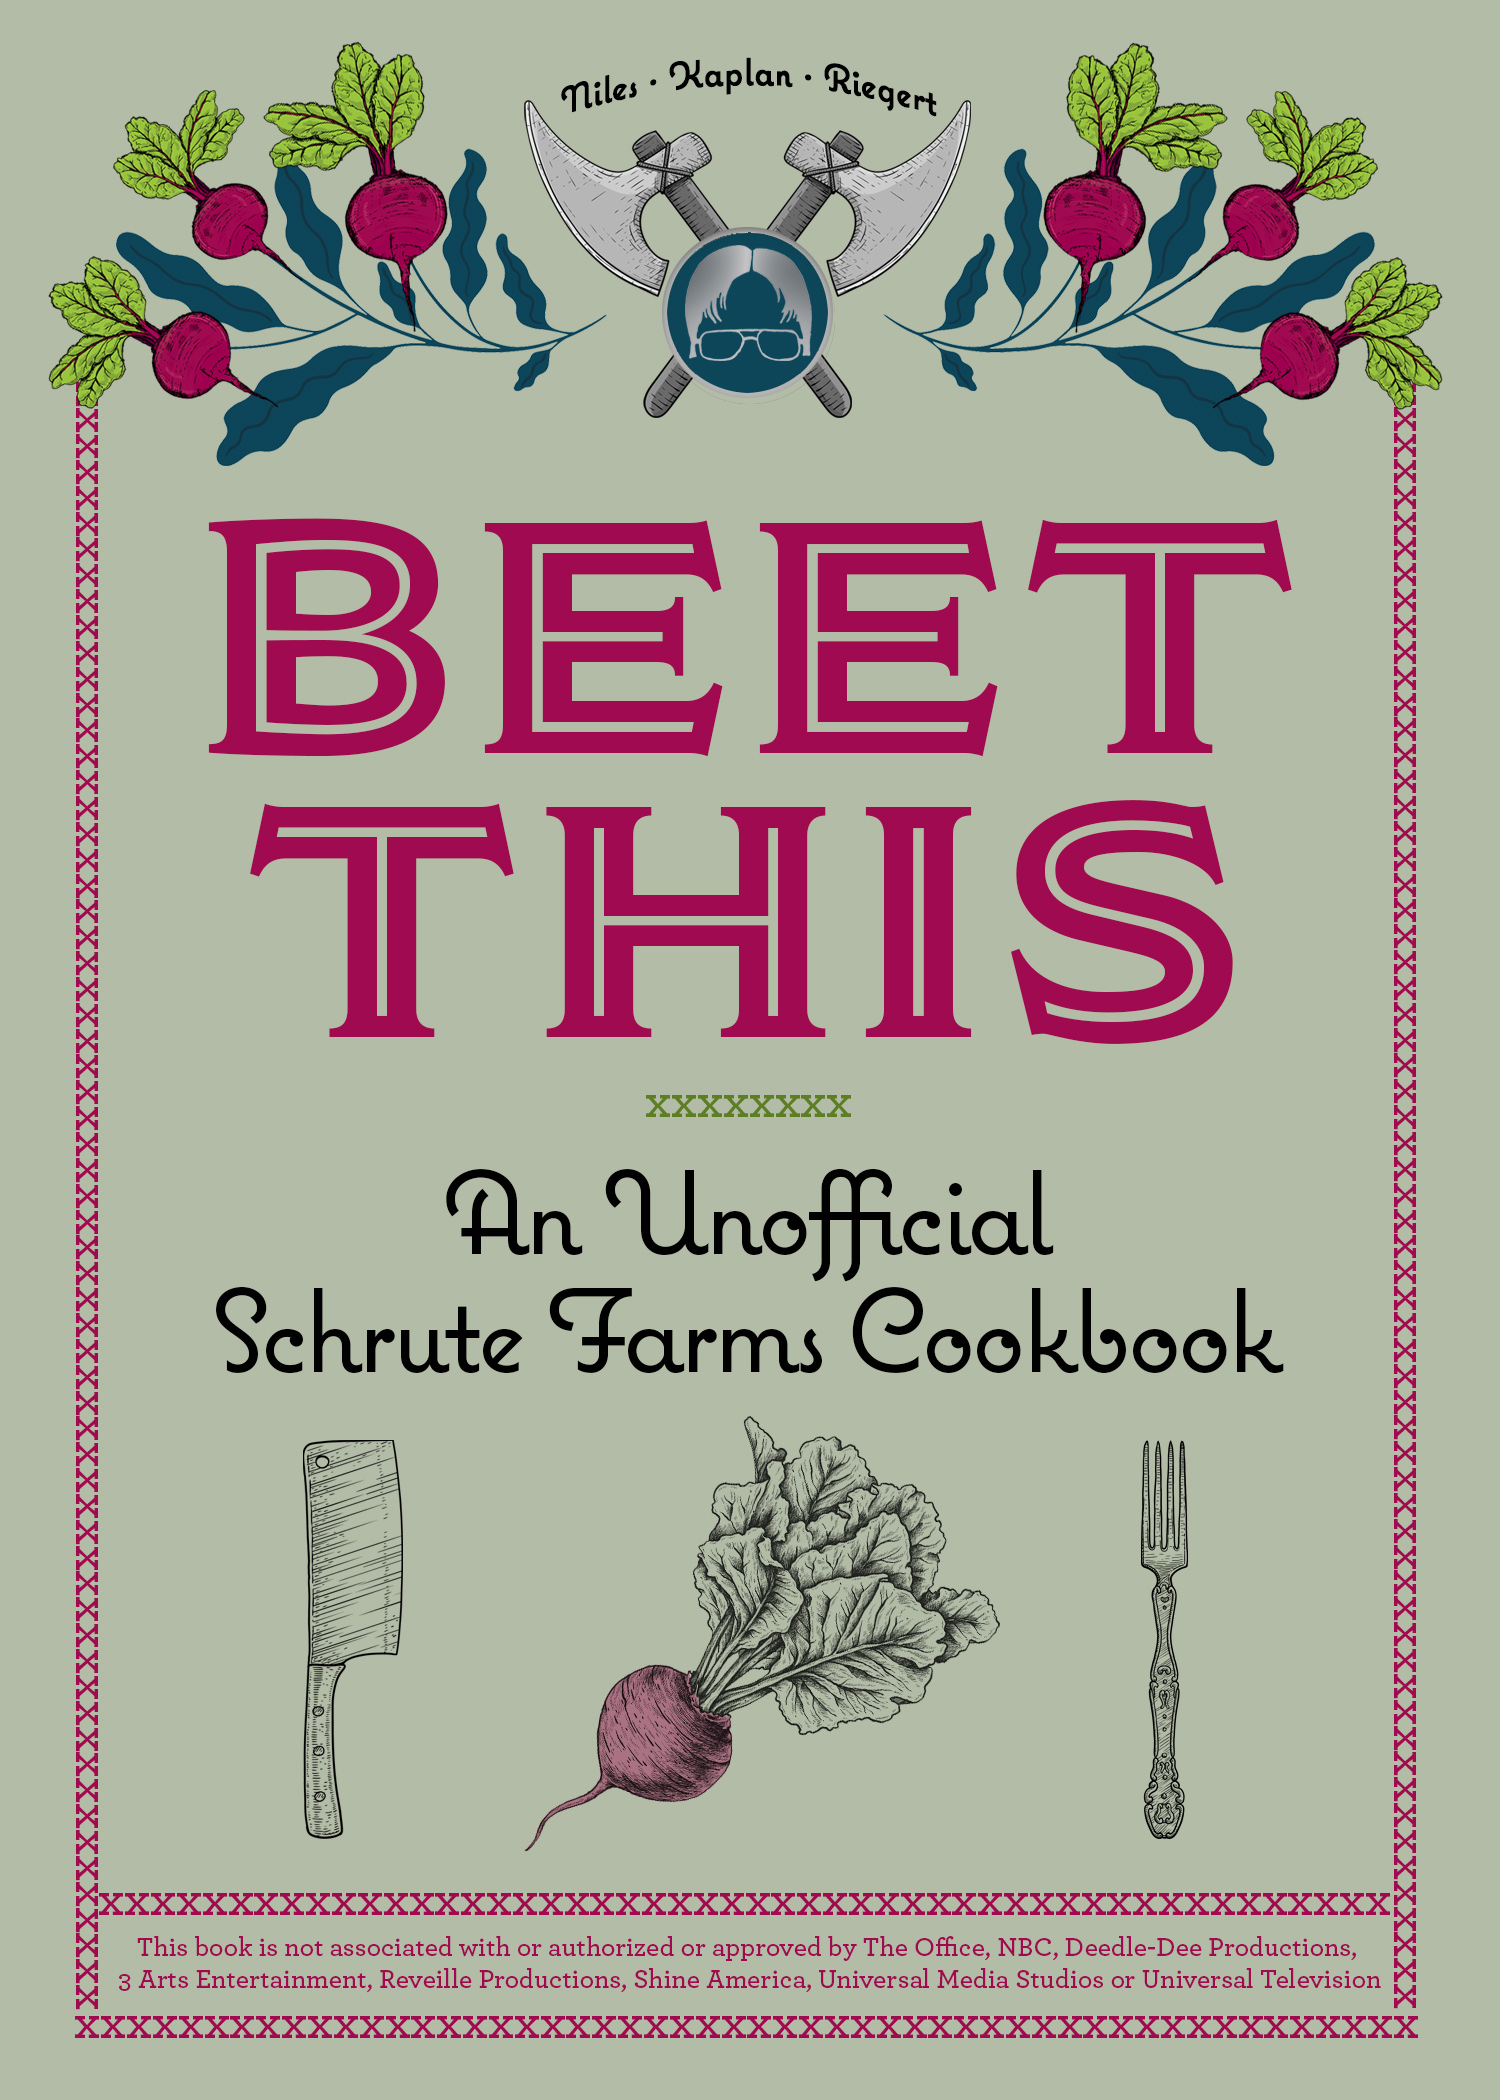 Beet This The Office Cookbook Cover